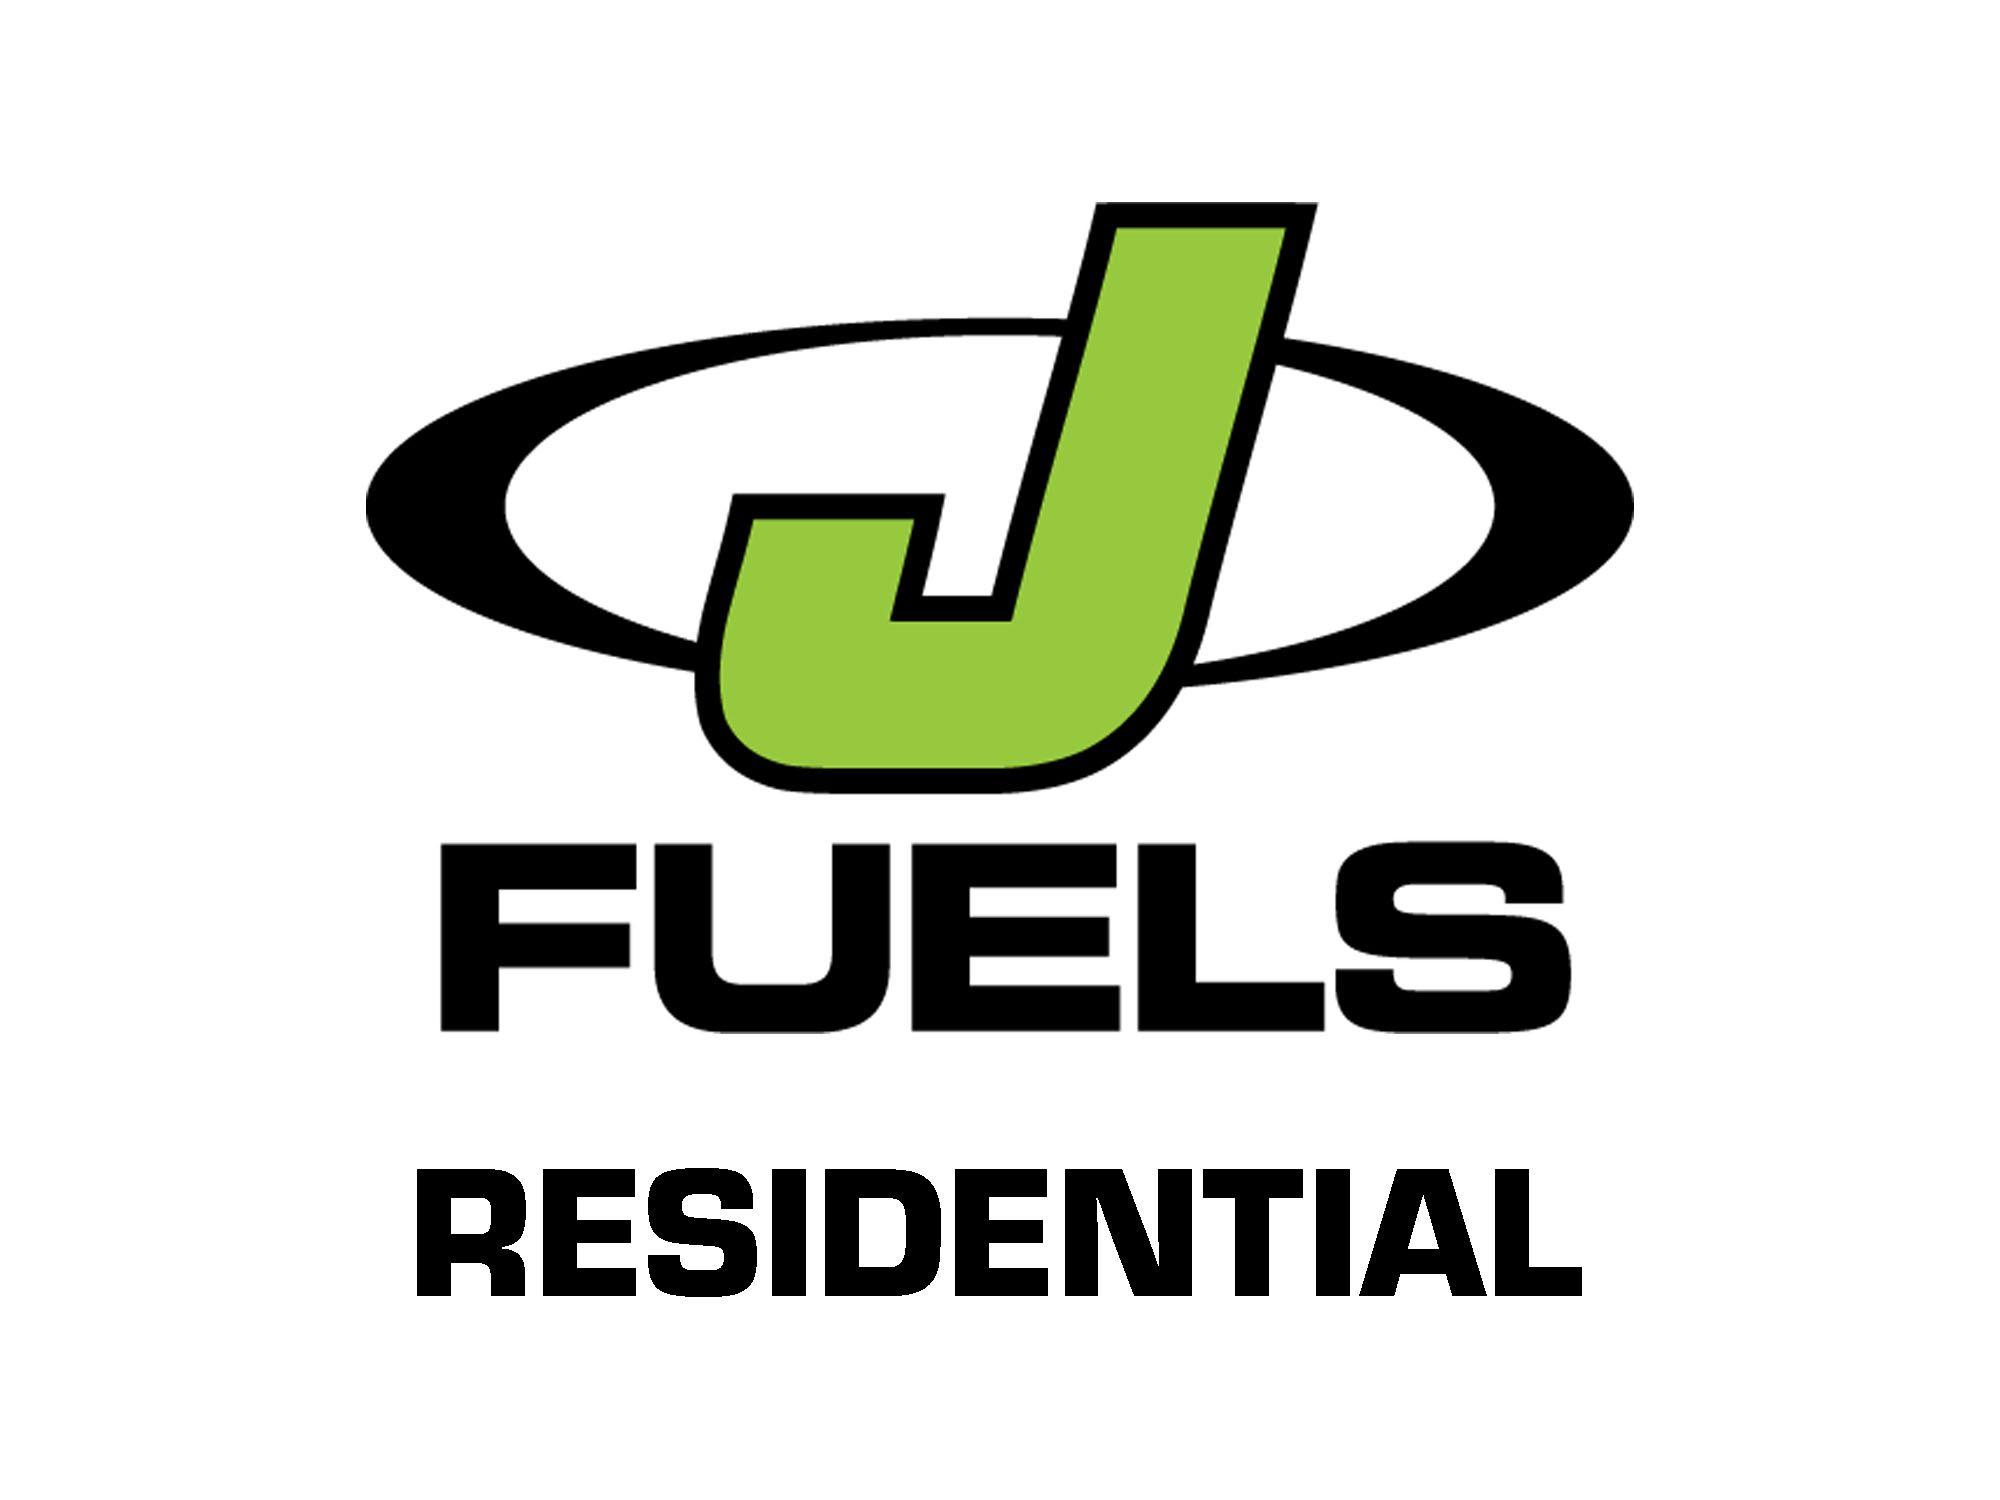 j_fuels-residential-hover